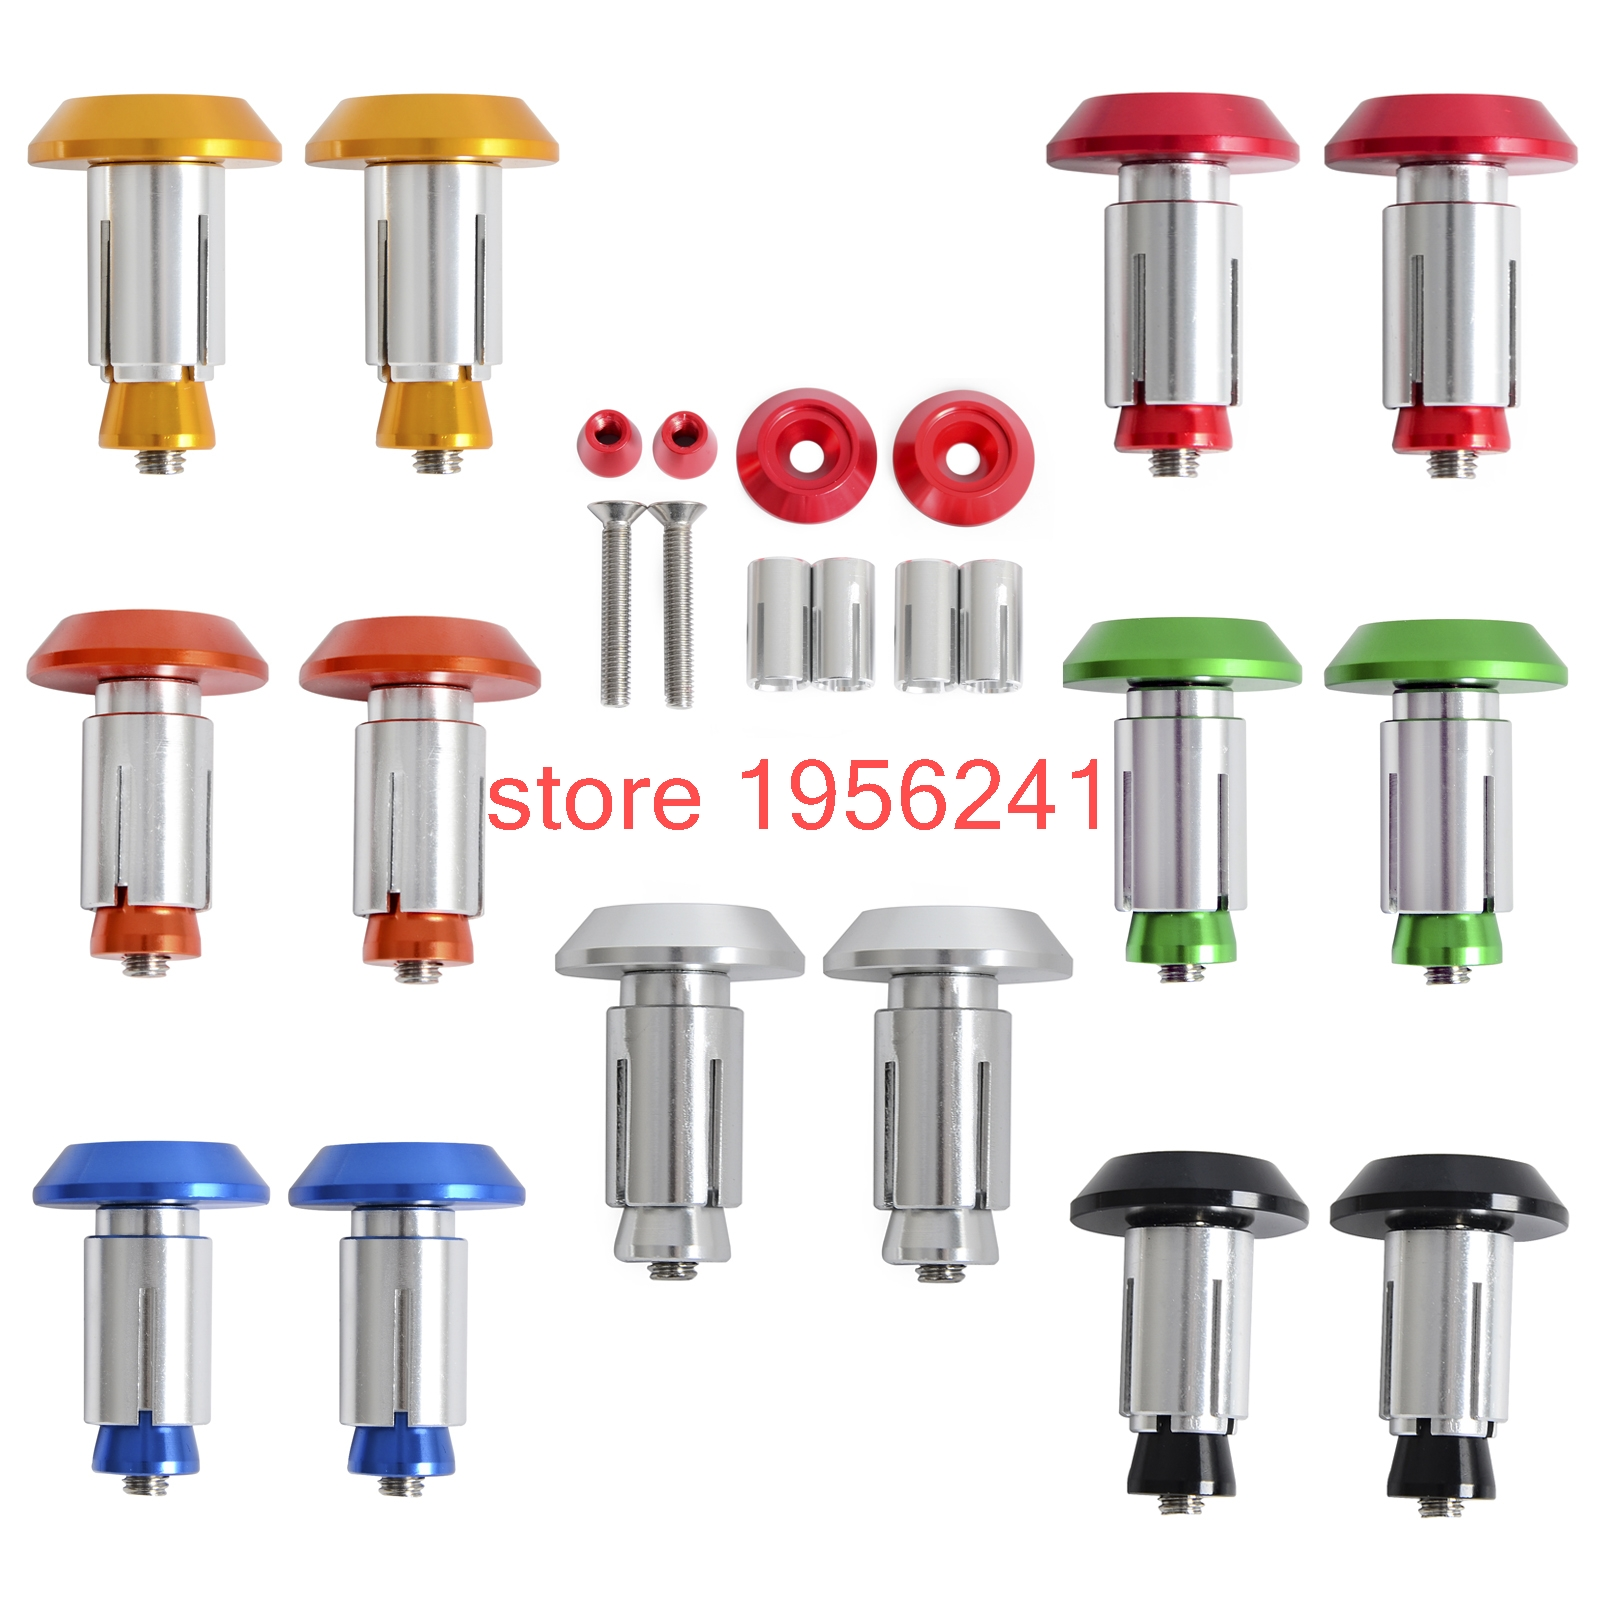 CNC Billet Handlebar Cap Plugs for KTM 50 65 125 200 250 300 350 400 450 500 525 530 690 990 SX EXC SMR MXC SXS 2000-2016 orange cnc billet factory oil filter cover for ktm sx exc xc f xcf w 250 400 450 520 525 540 950 990